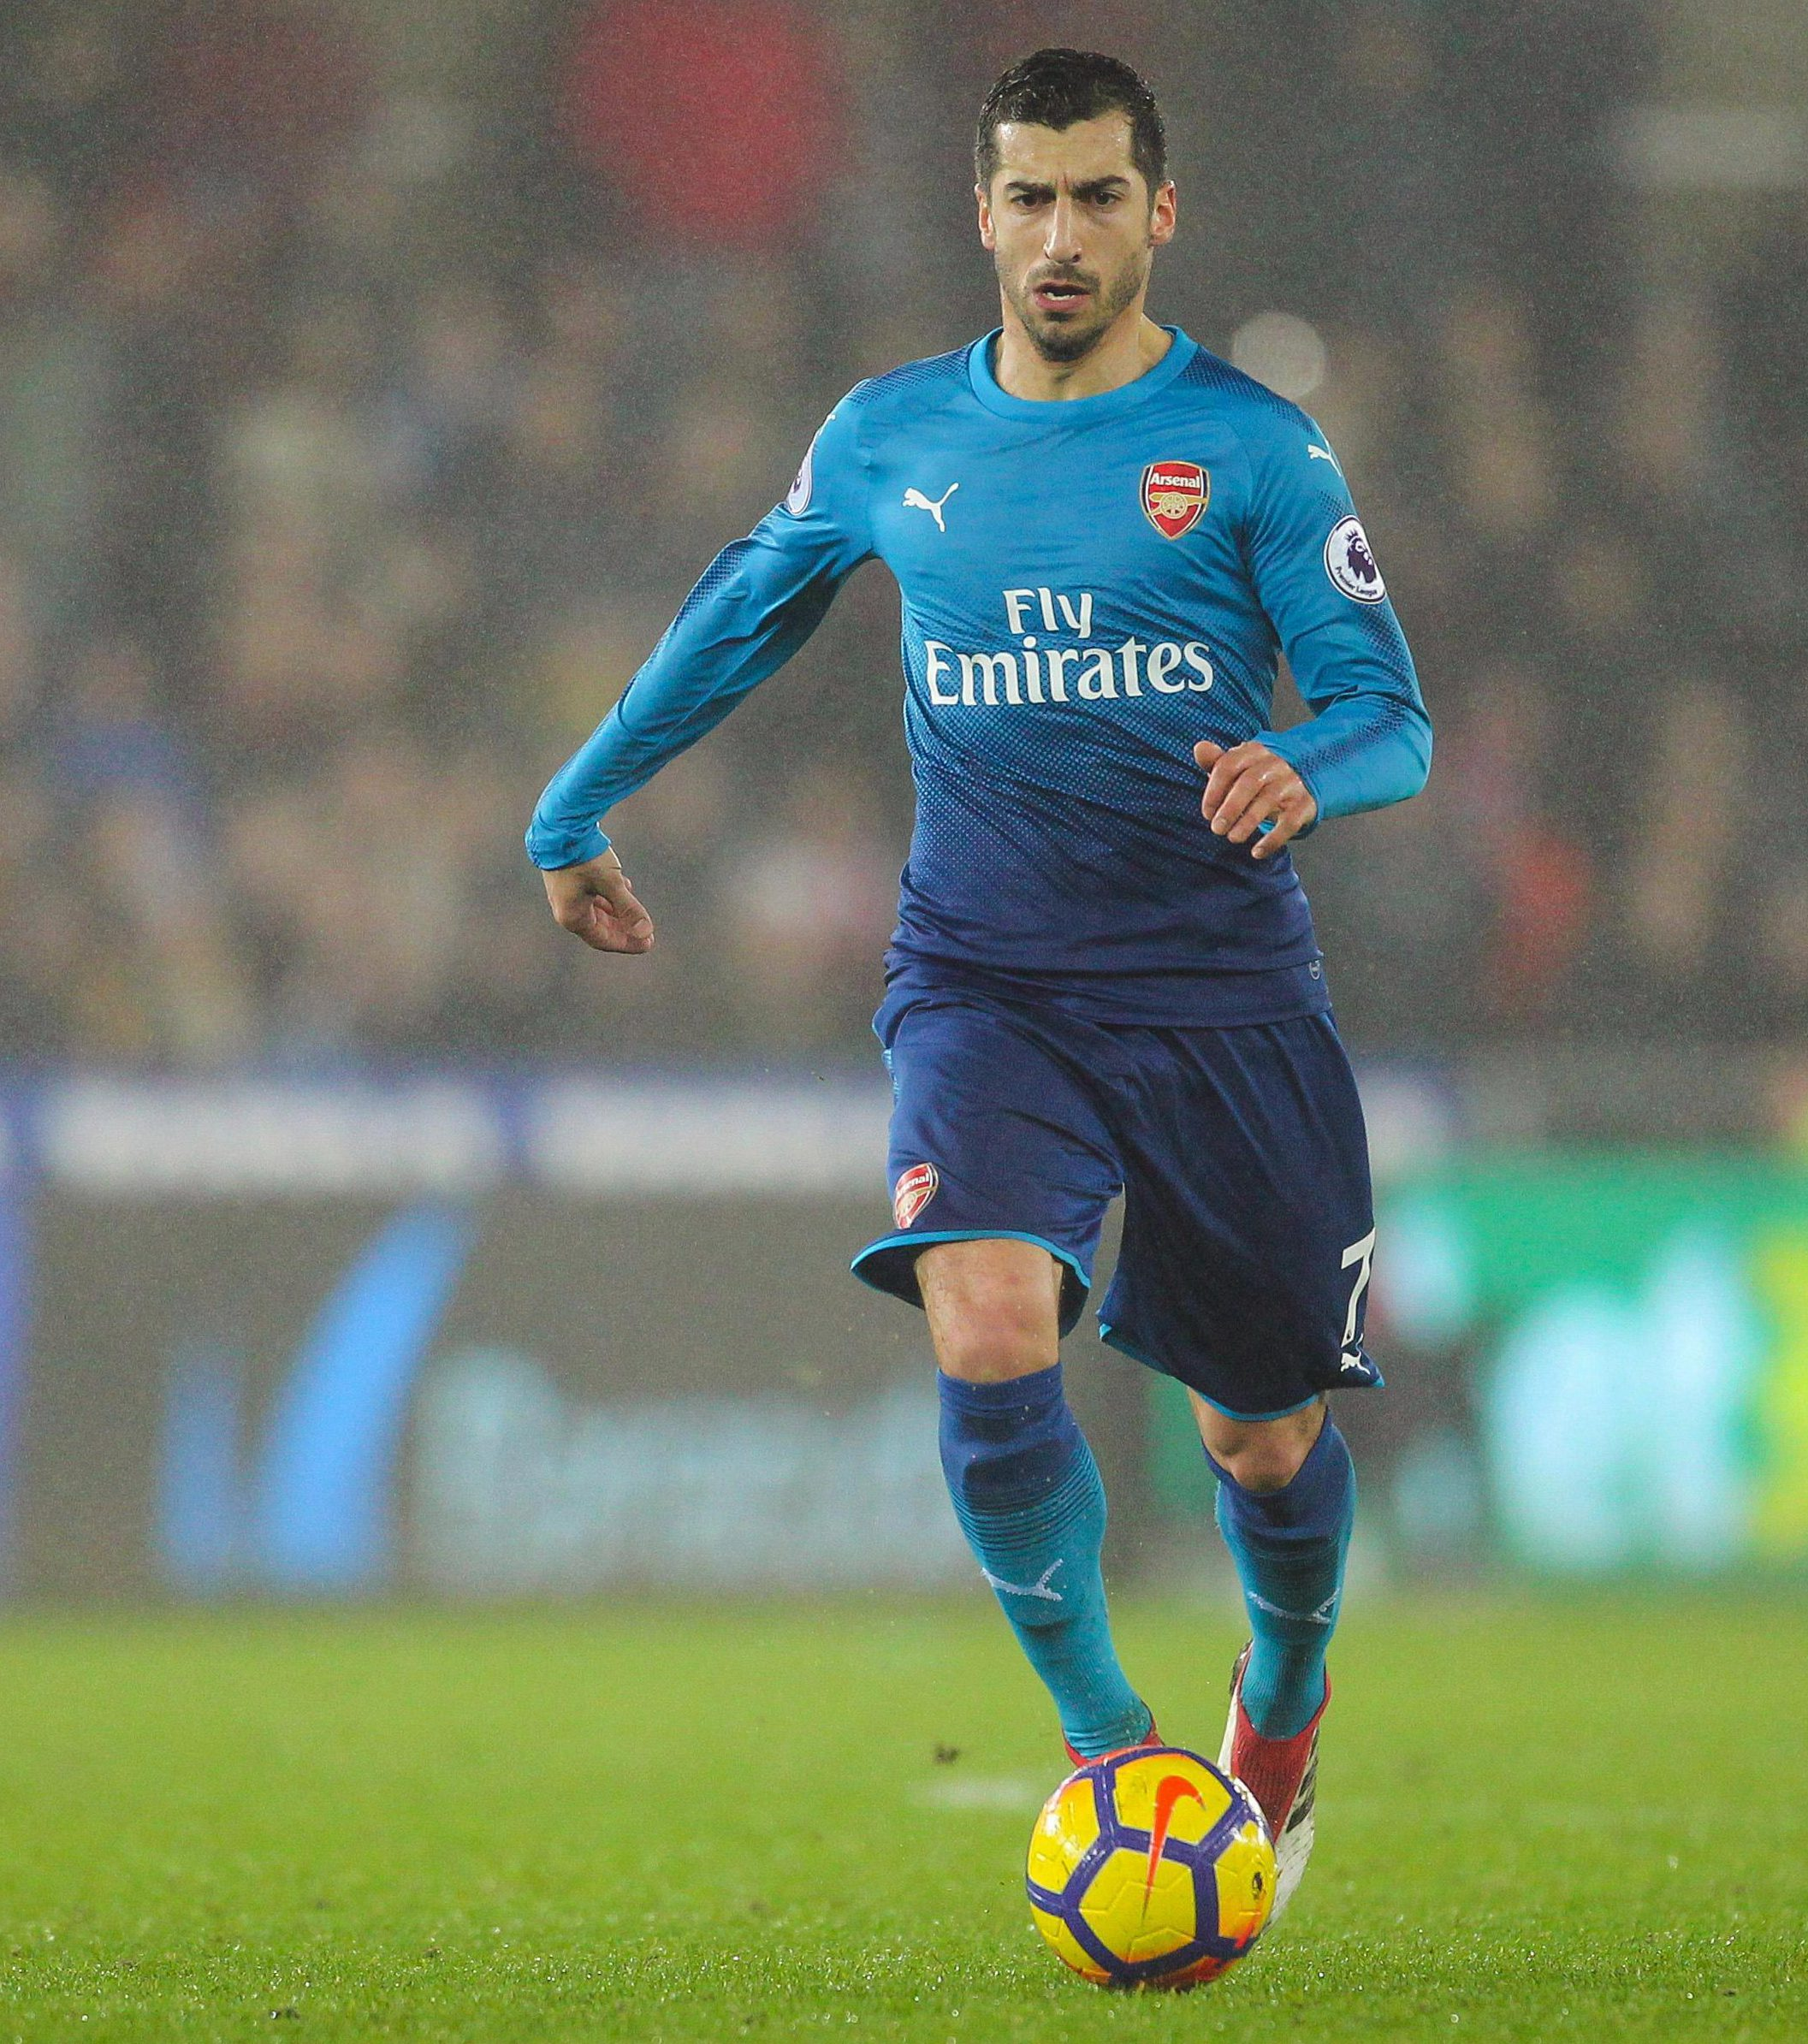 Henrikh Mkhitaryan has been added to Arsenal's Europa League squad and will wear the number 77 shirt